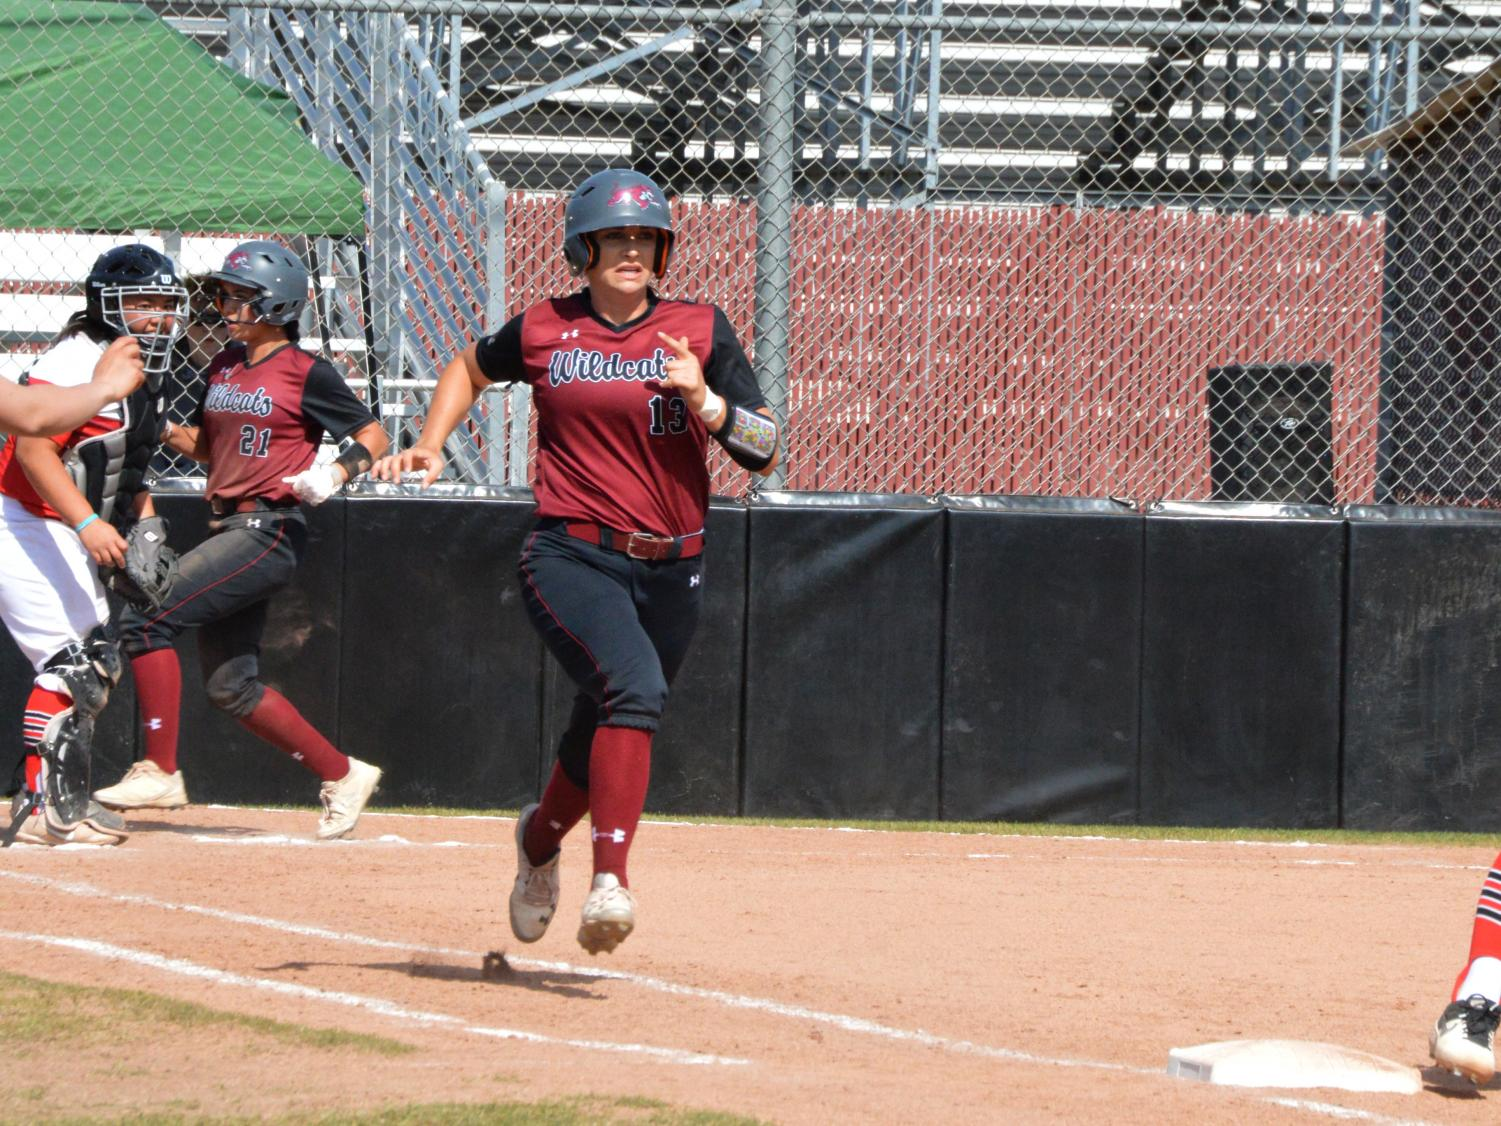 f86f00466c3f Bailey Akins went three for zero with a run and walk in game one. In game  two she went 3-for-5 with an RBI. Photo credit: Olyvia Simpson